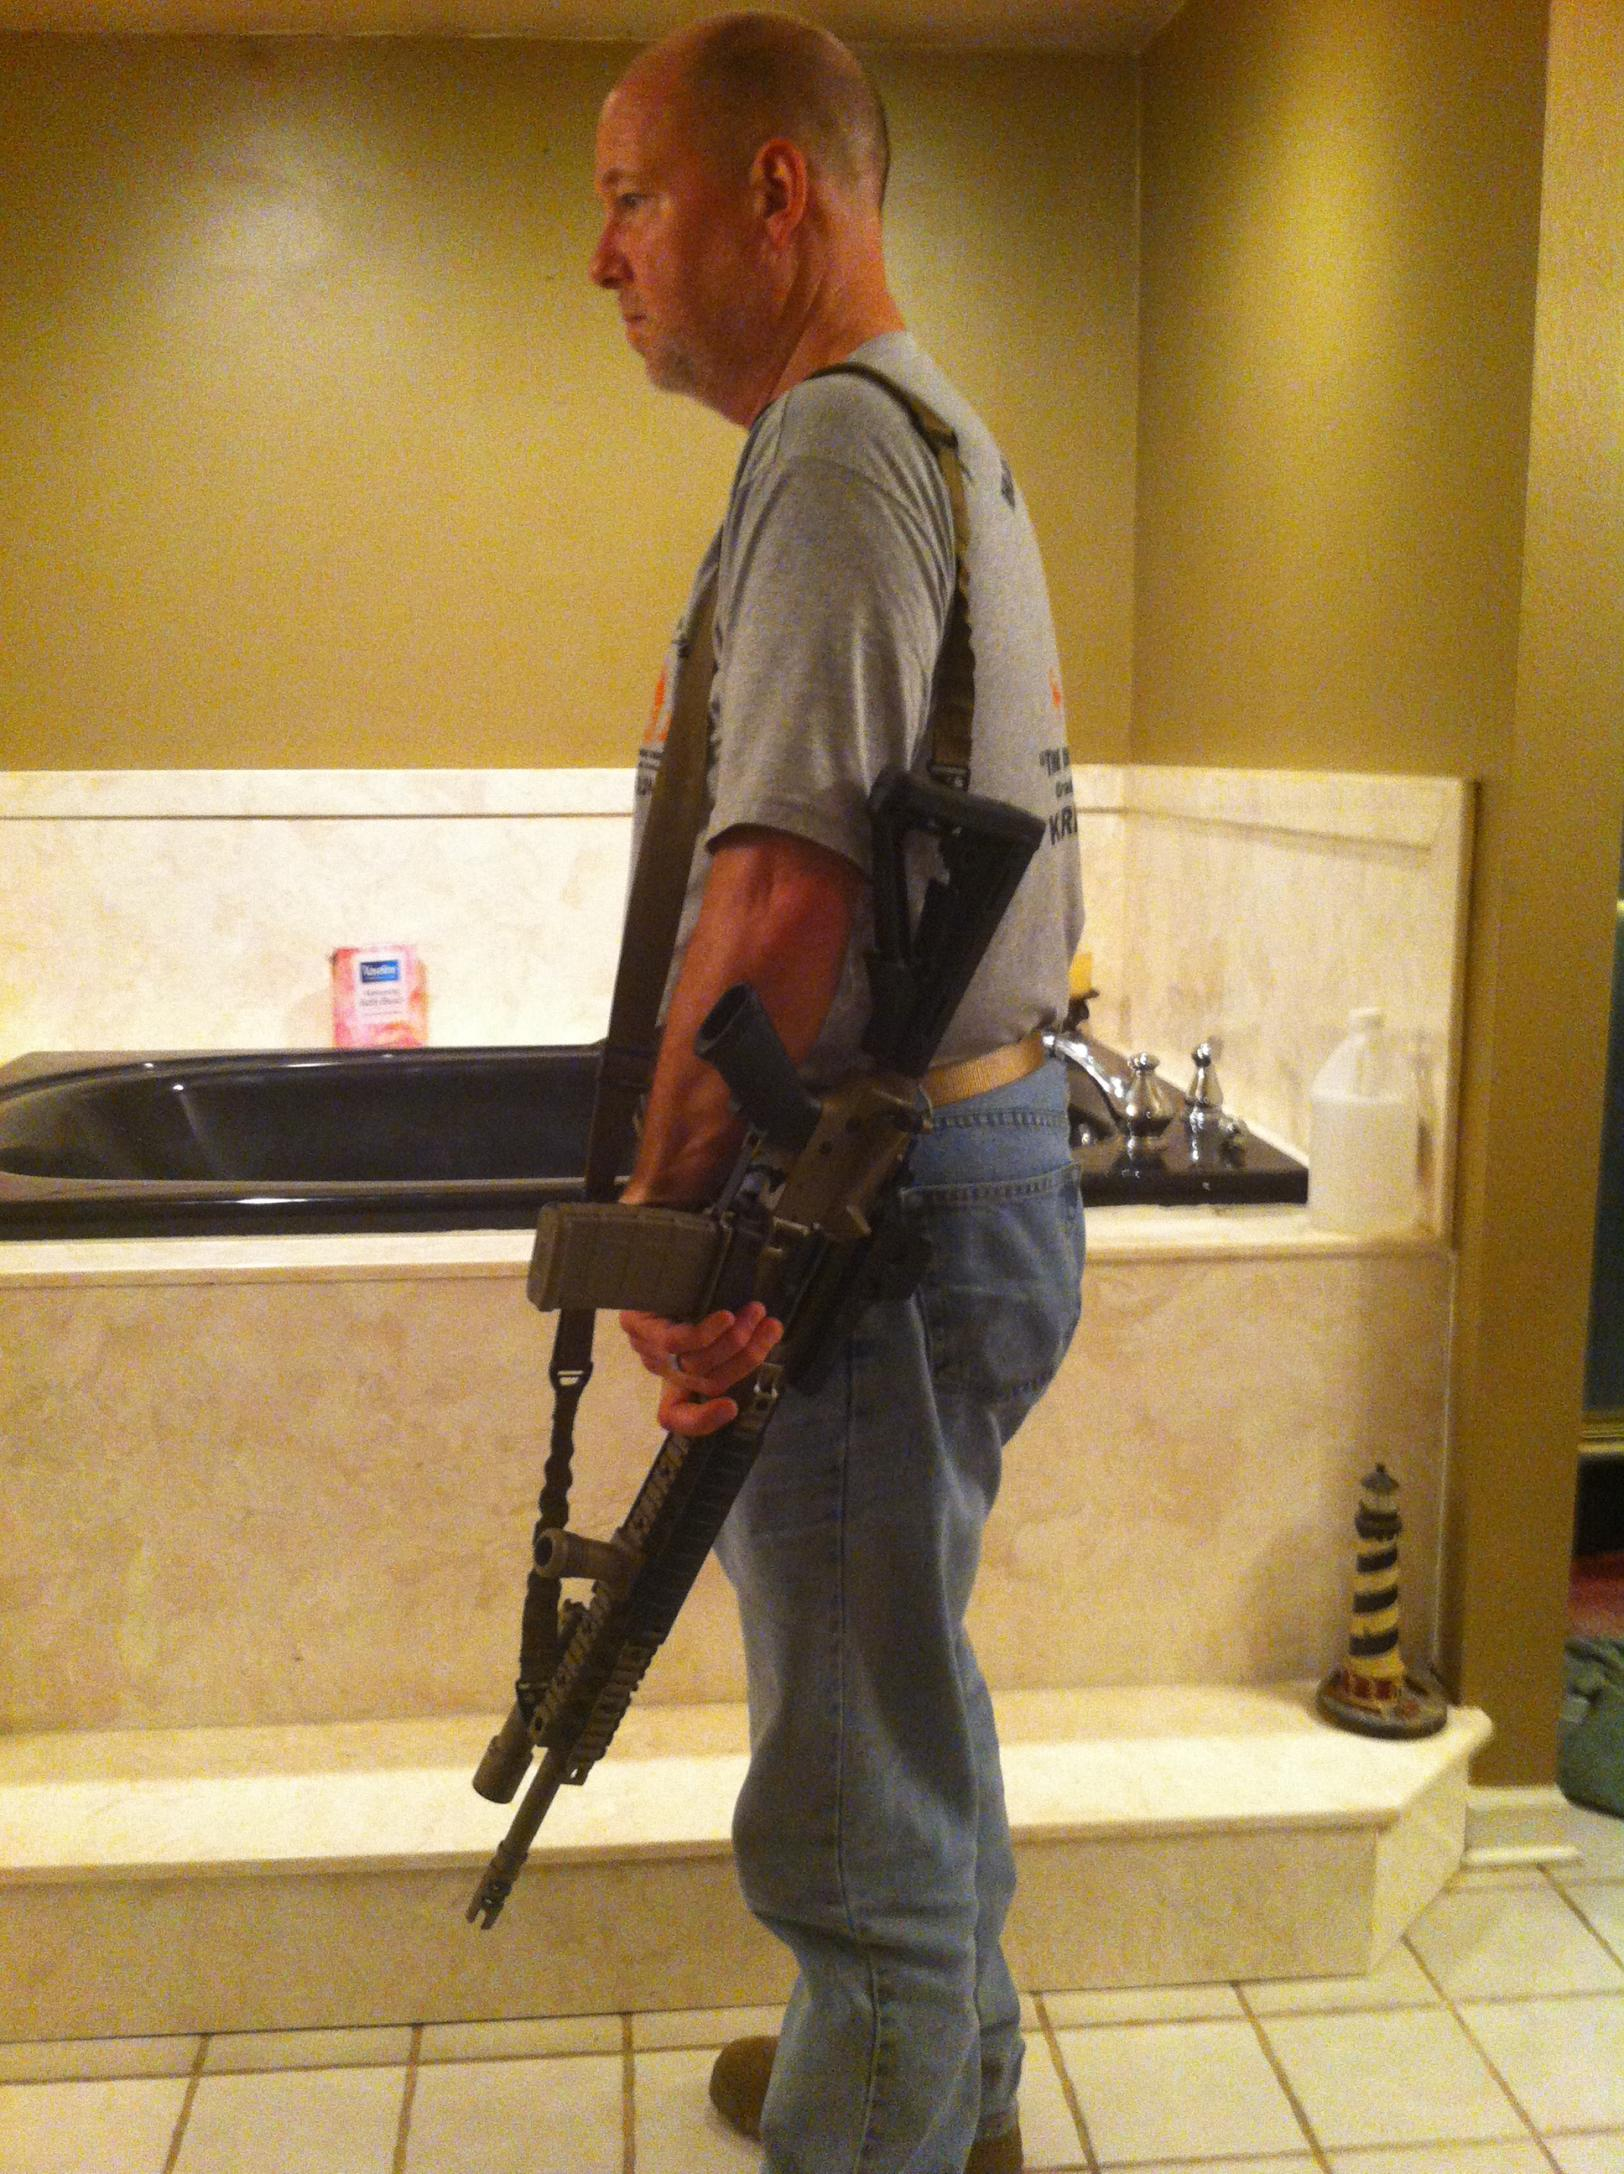 Defensive carry method, when carrying openly -- sidearms, long guns-rifle-slung-002.jpg